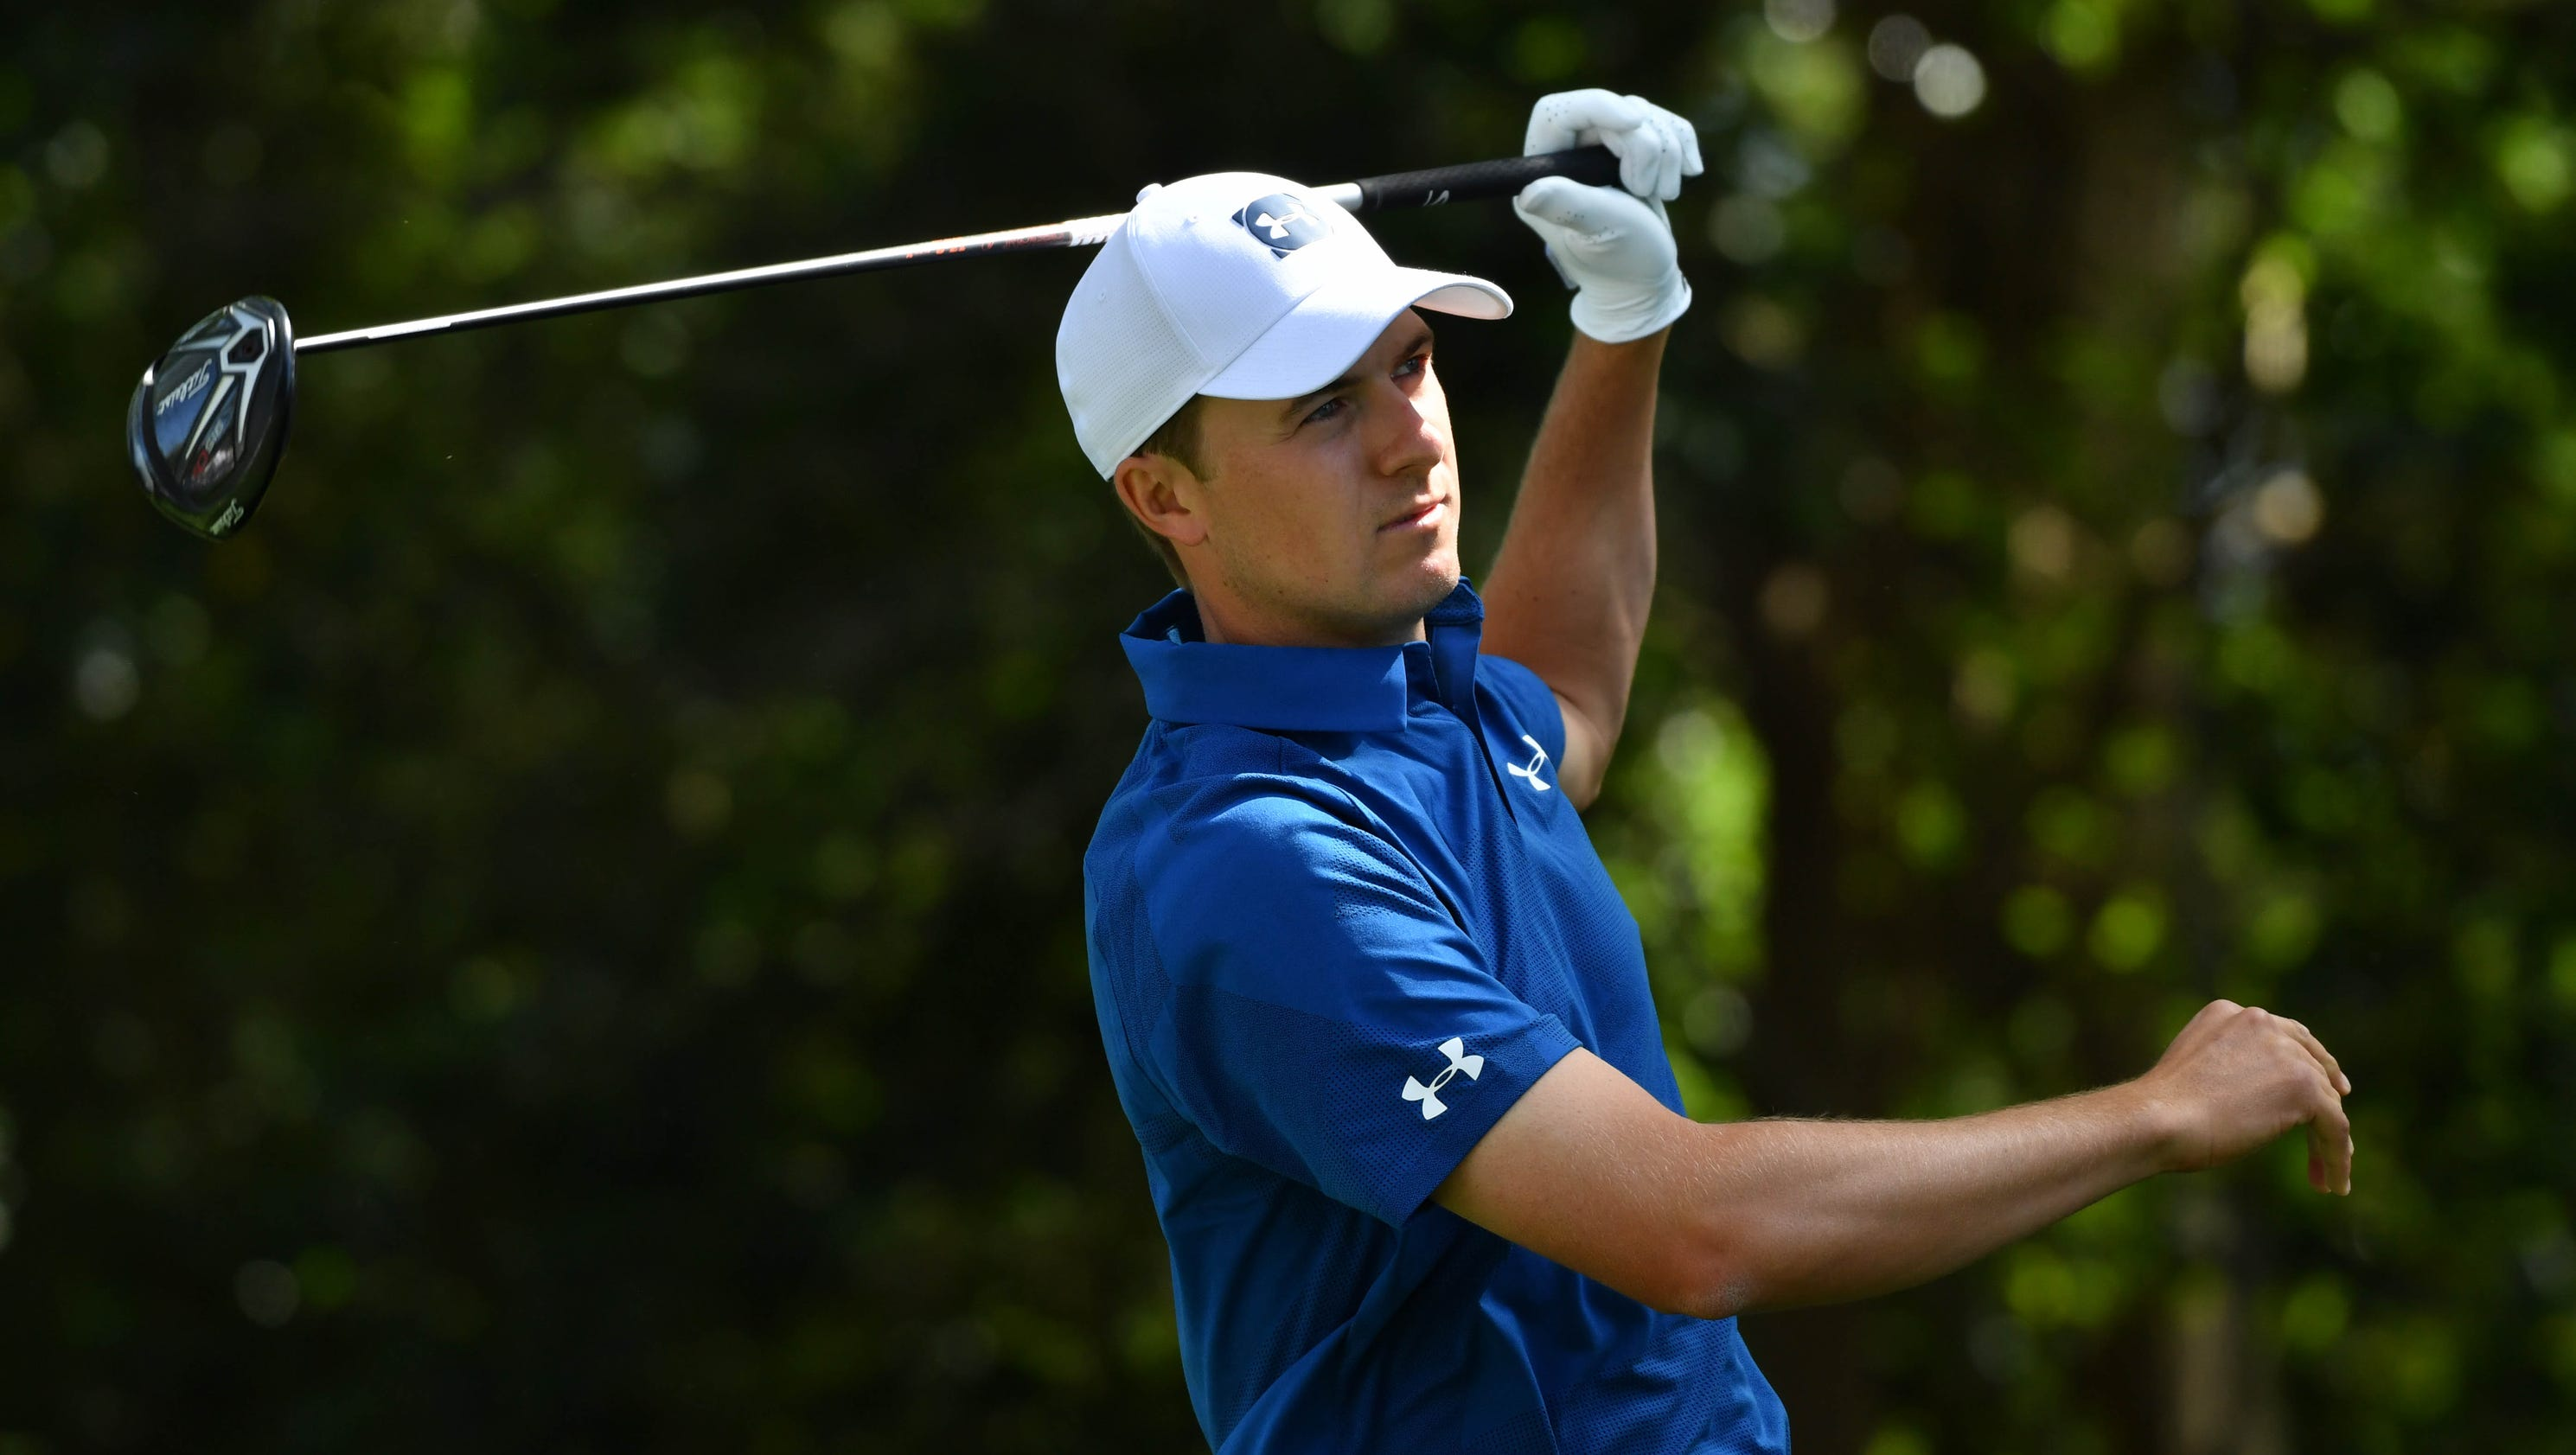 Masters Jordan Spieth Takes Punches But Stays In Contention. Furniture Shipping Company Data Entry Degree. Storage Units Modesto Ca Foreign Service Test. How Do I Become A Substitute Teacher. Car Mechanic School Cost Online Courses Excel. How To Send Large Files To Another Computer. Best Business Account Bank Lsat Games Online. Which Online Broker Is The Best. Delicious Alcoholic Drinks Recipes